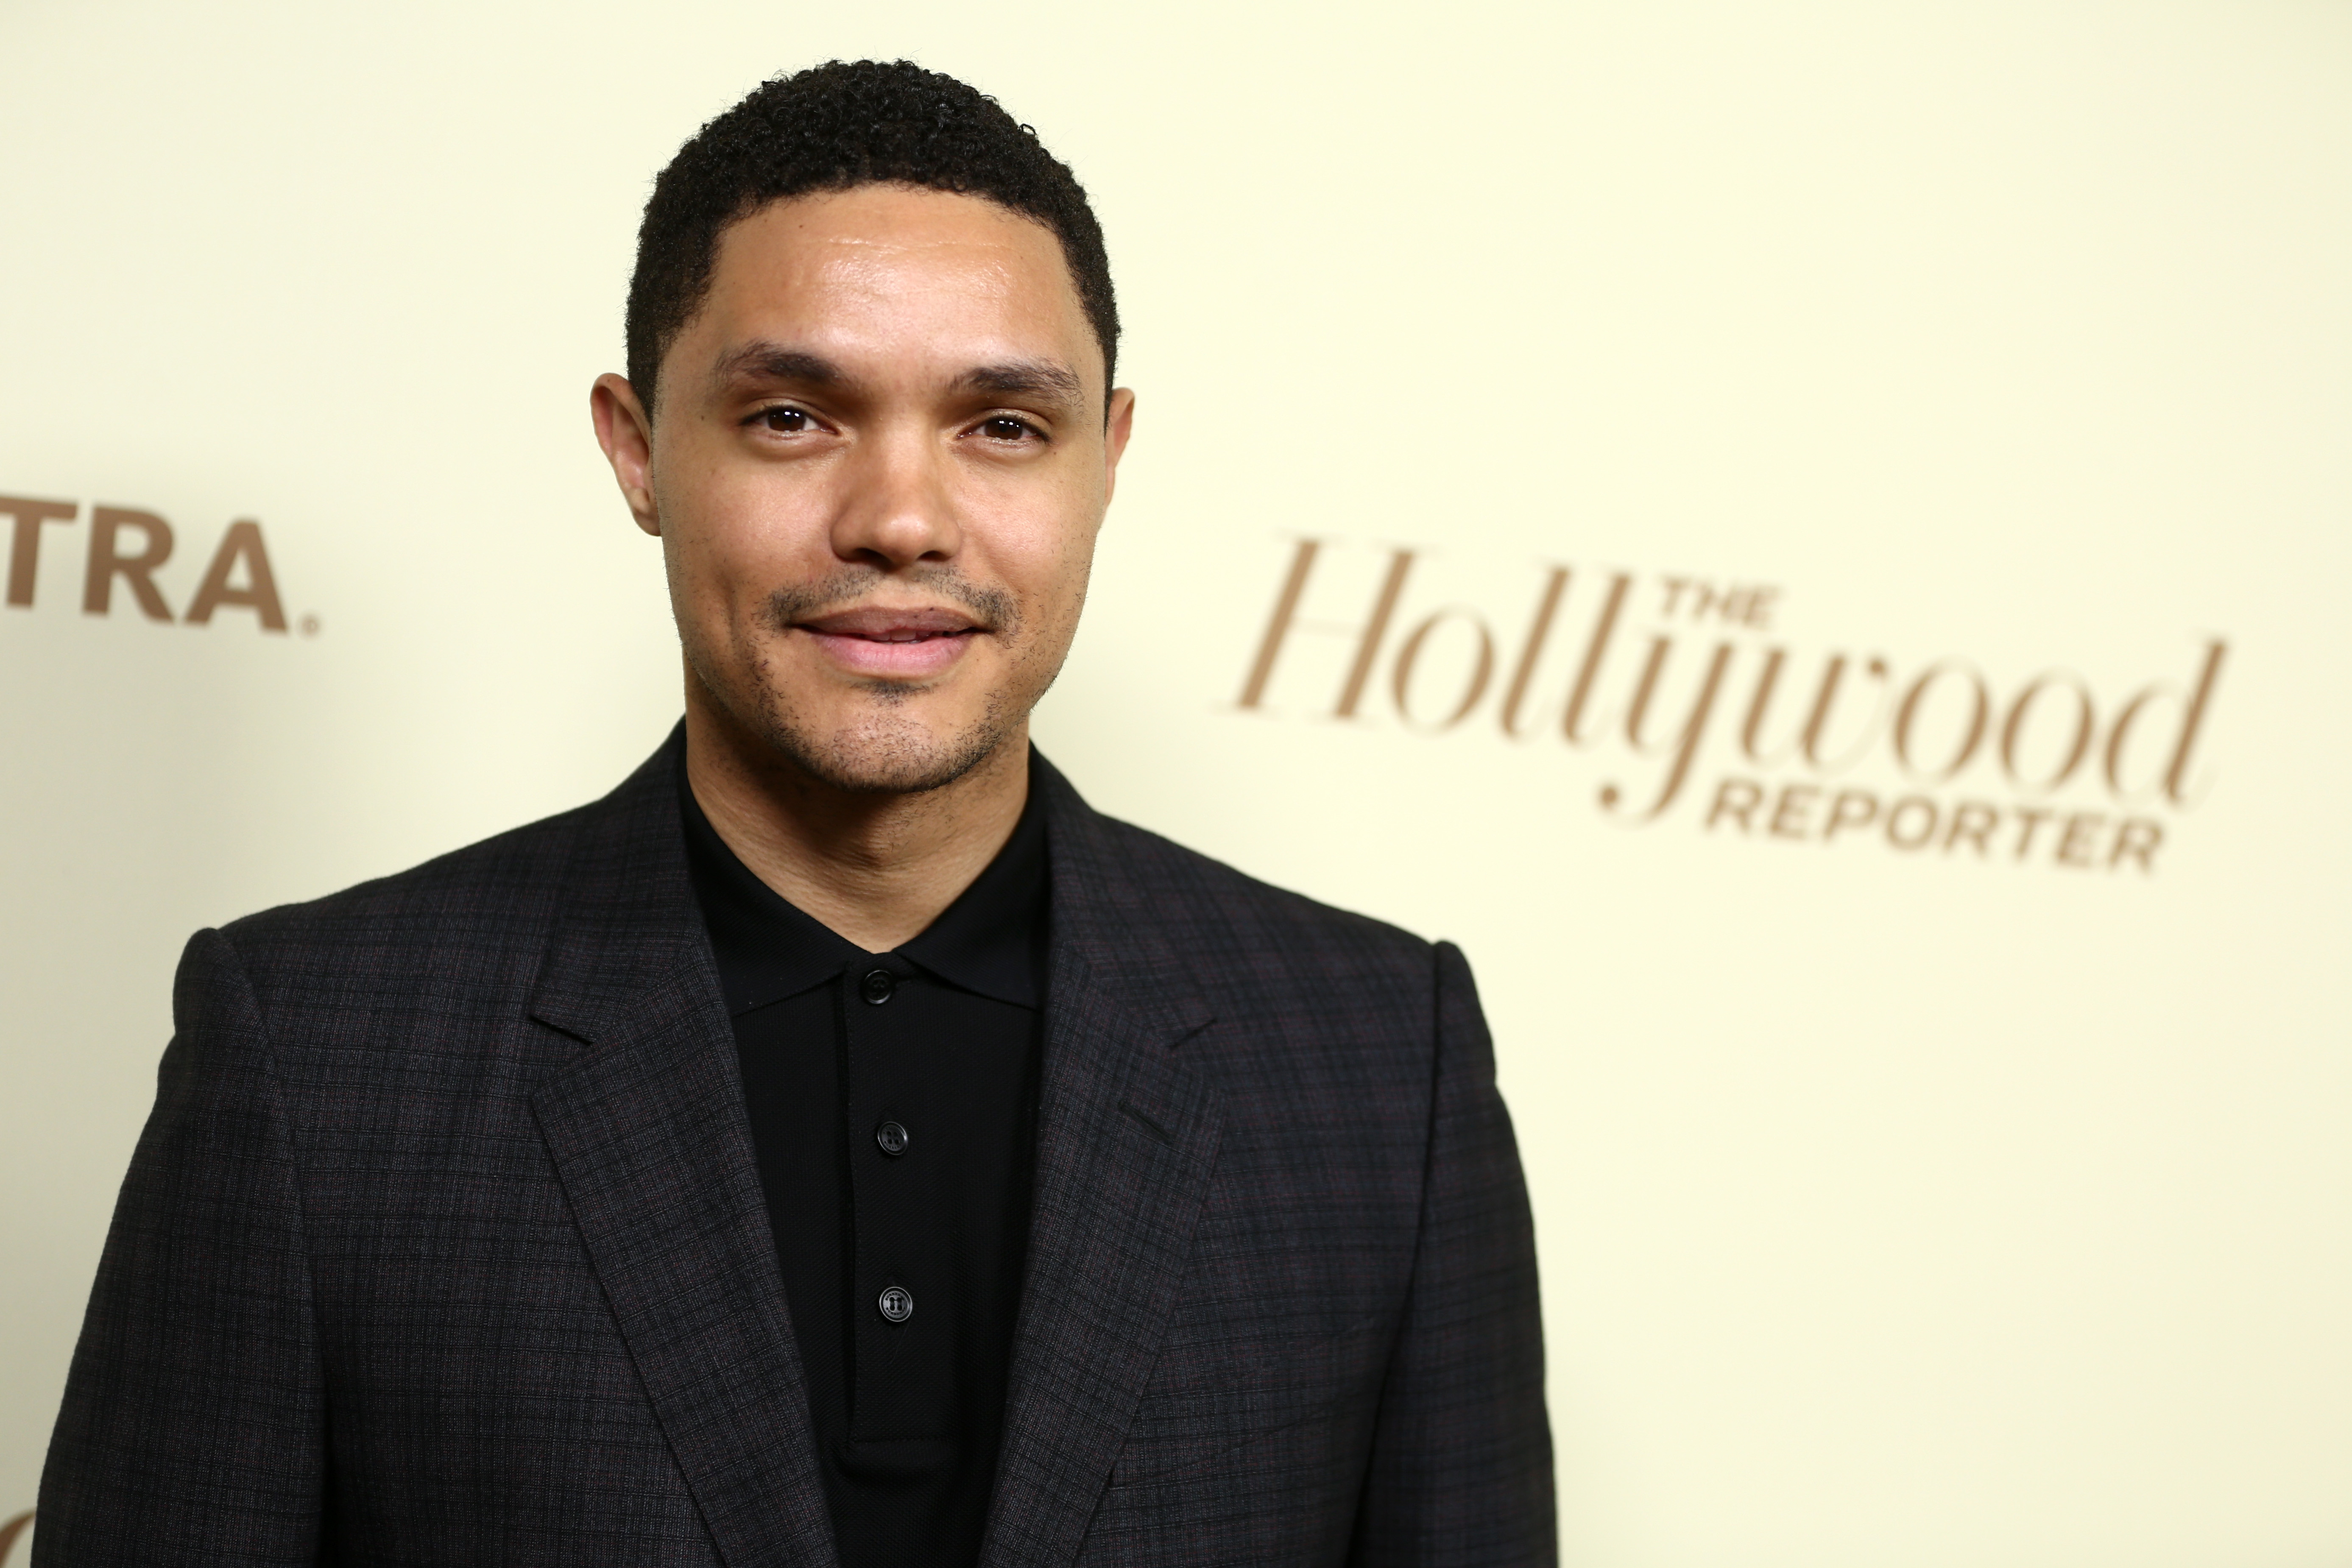 Trevor Noah's stunning take on Liam Neeson's racist comments drama is incredible